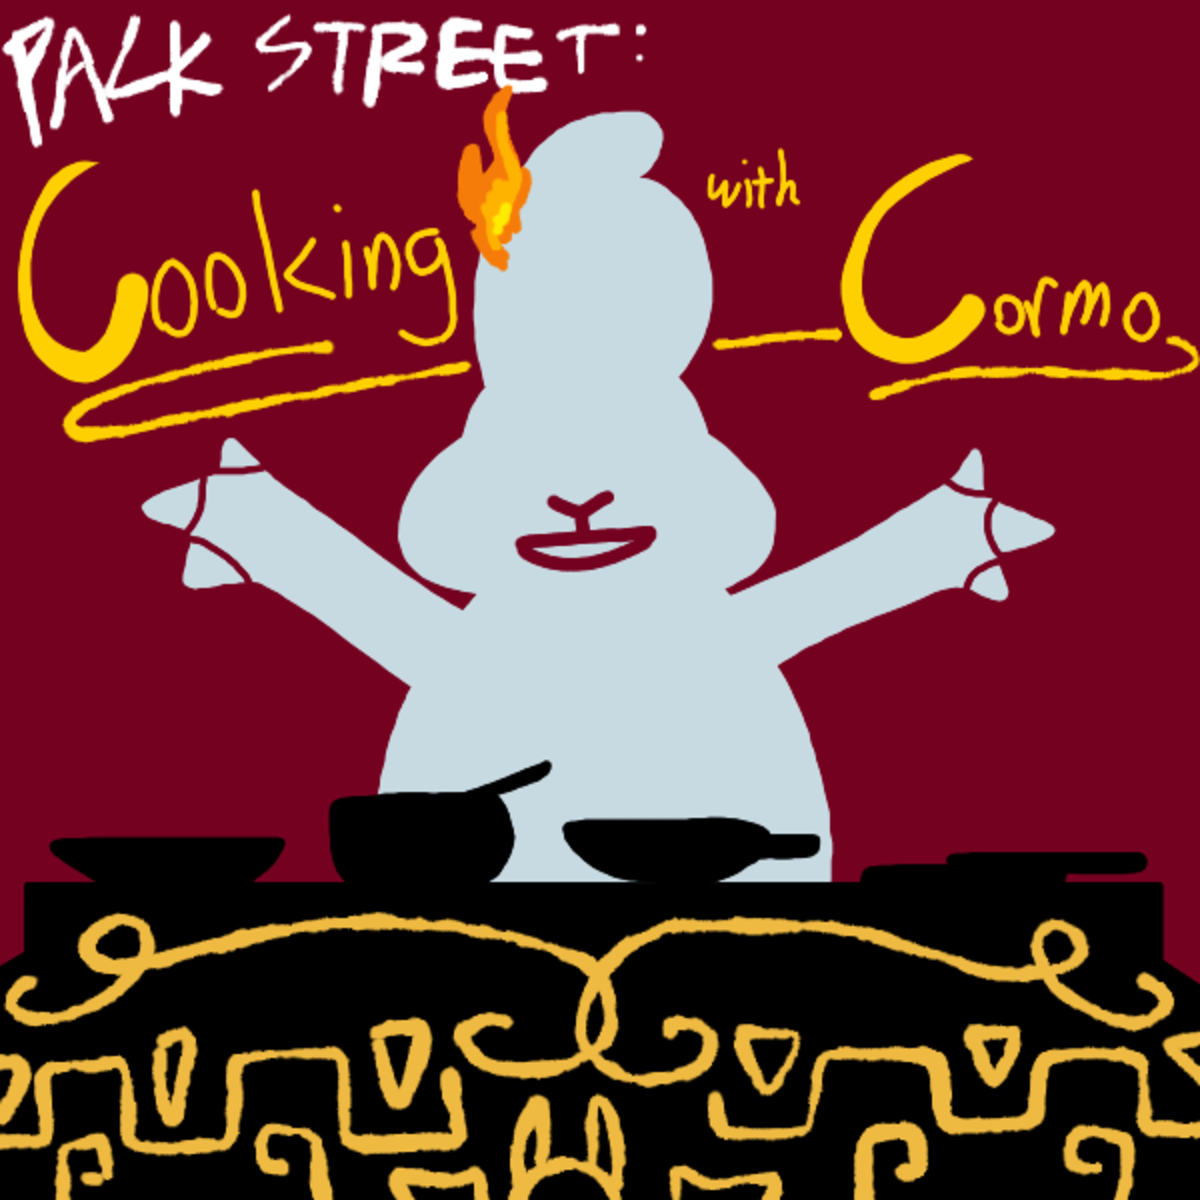 New Packstreet: Cooking With Cormo. Link to story: http://archiveofourown.org/works/12141837/chapters/31489065 Bring to a boil, let stew, serve hot... since when is gideon gleeful a furry?